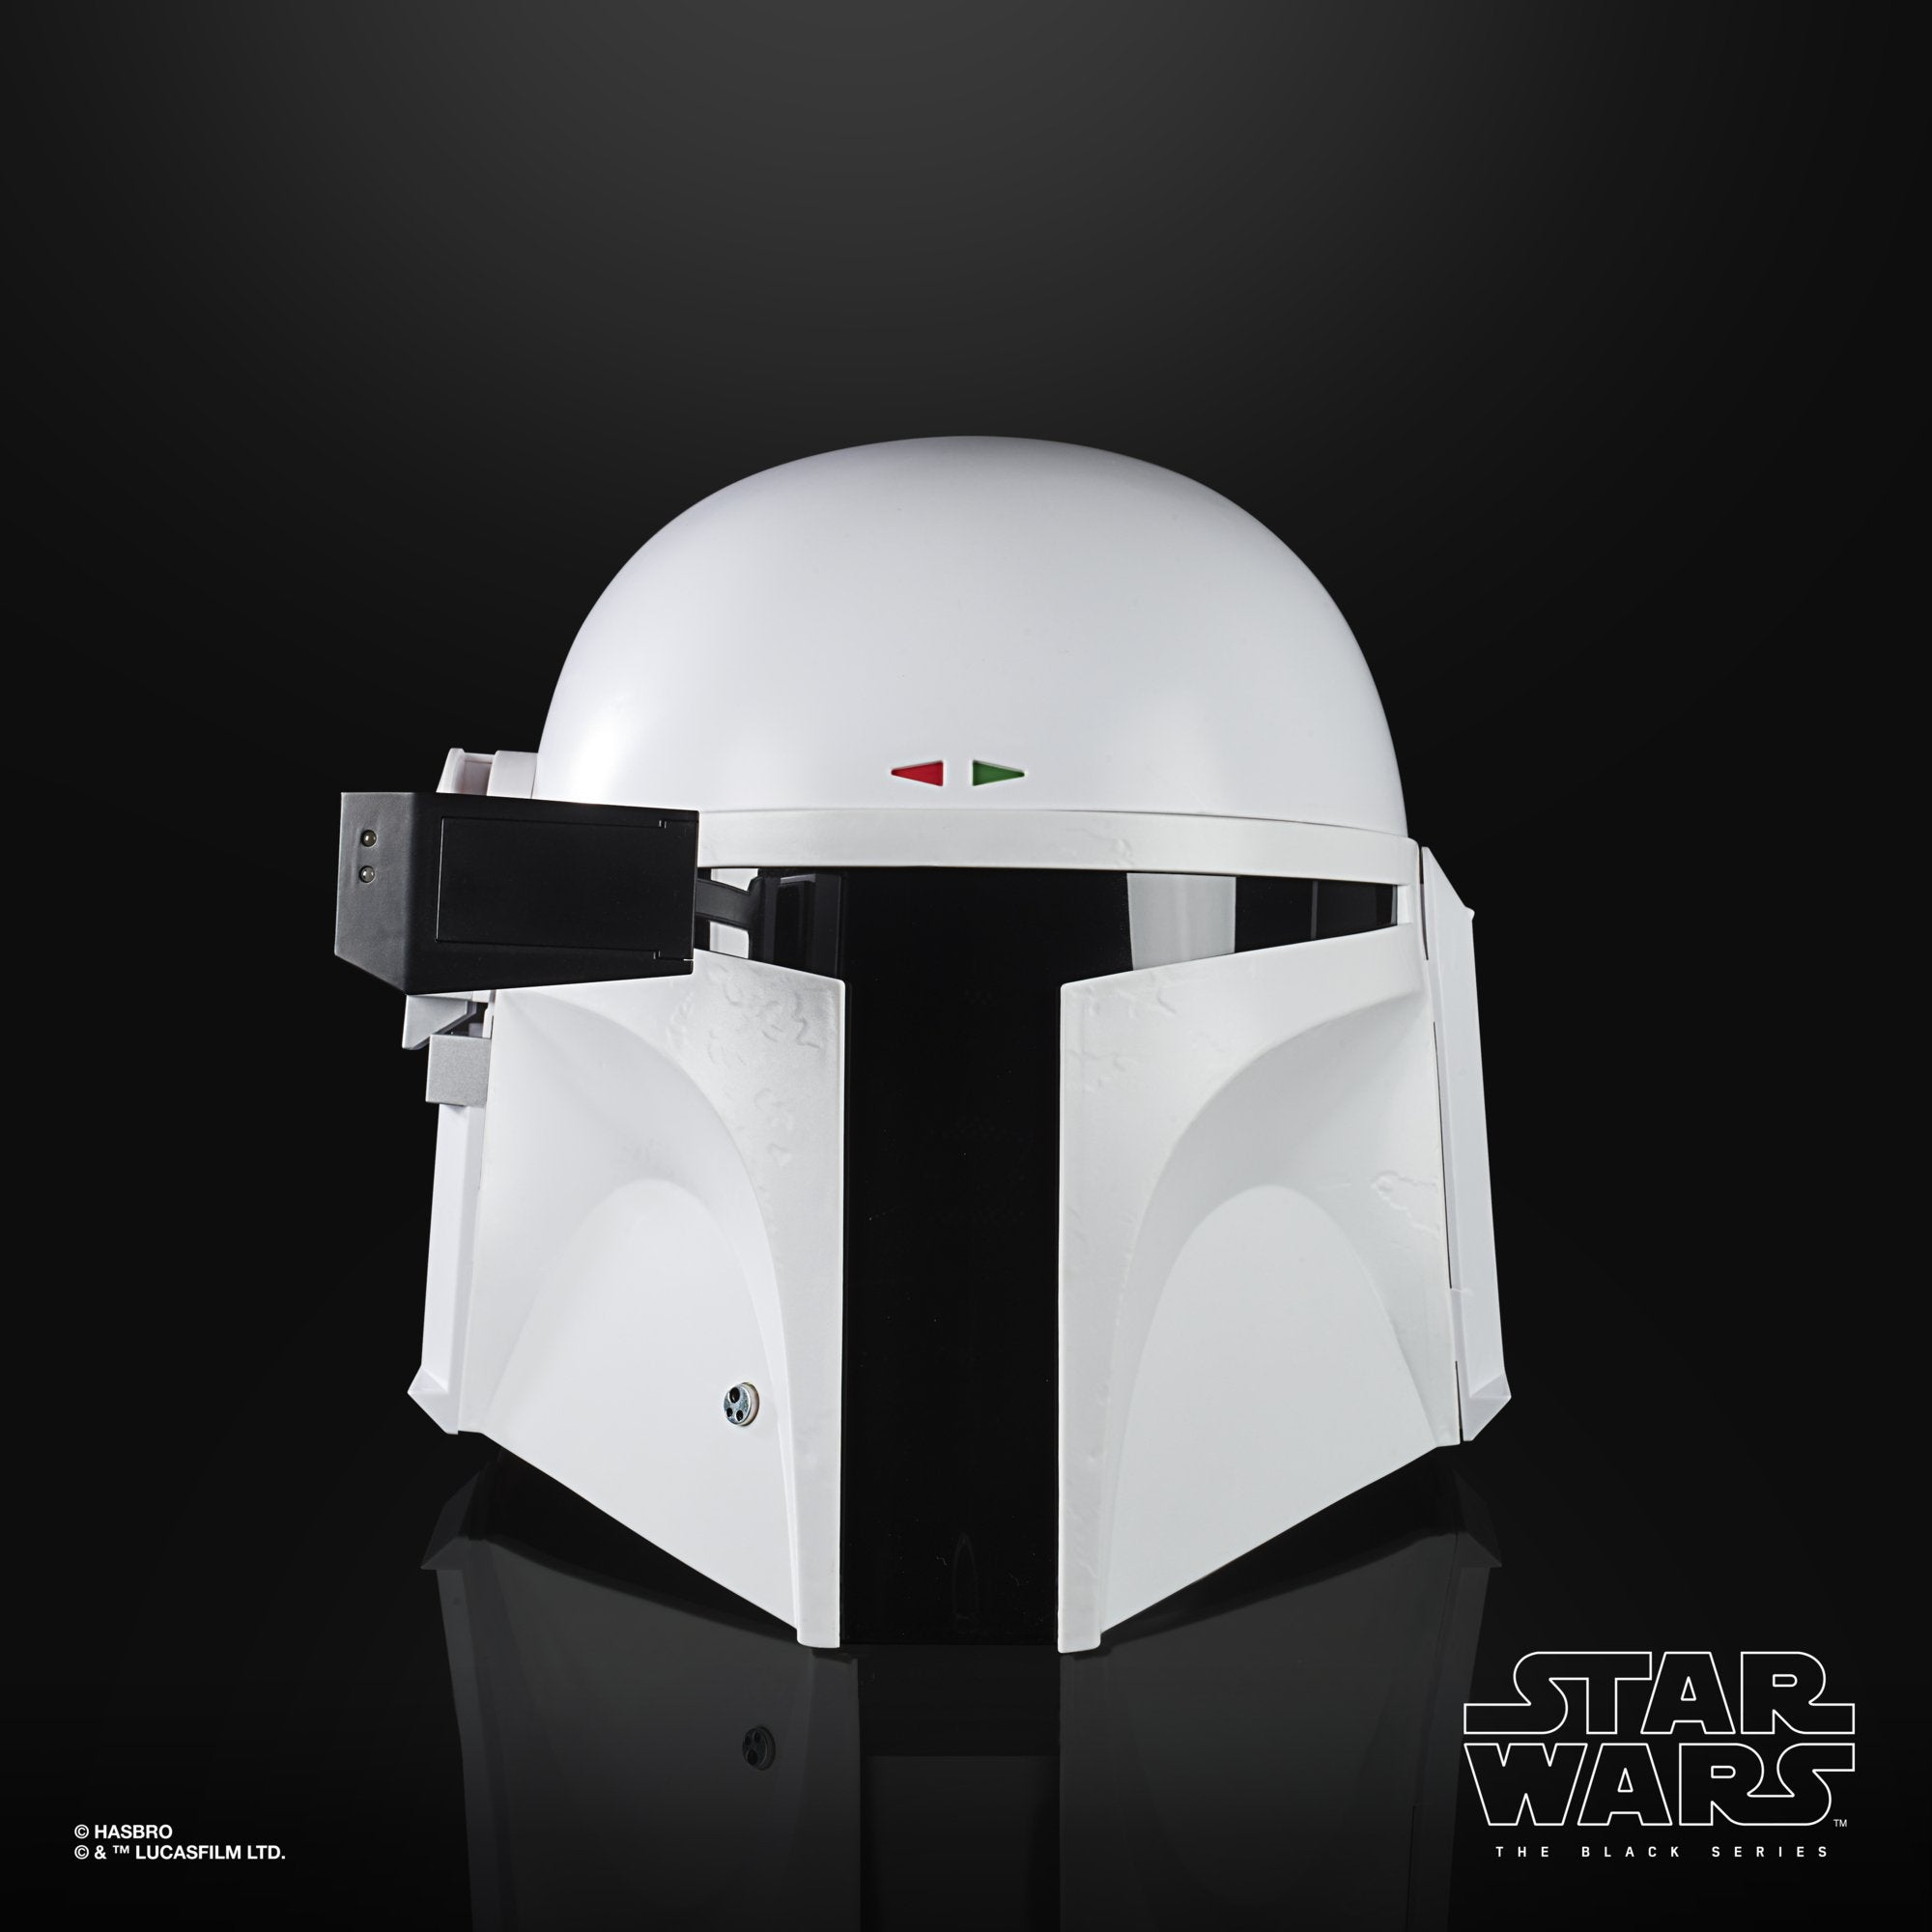 Star Wars The Black Series Boba Fett Prototype Armor Helmet